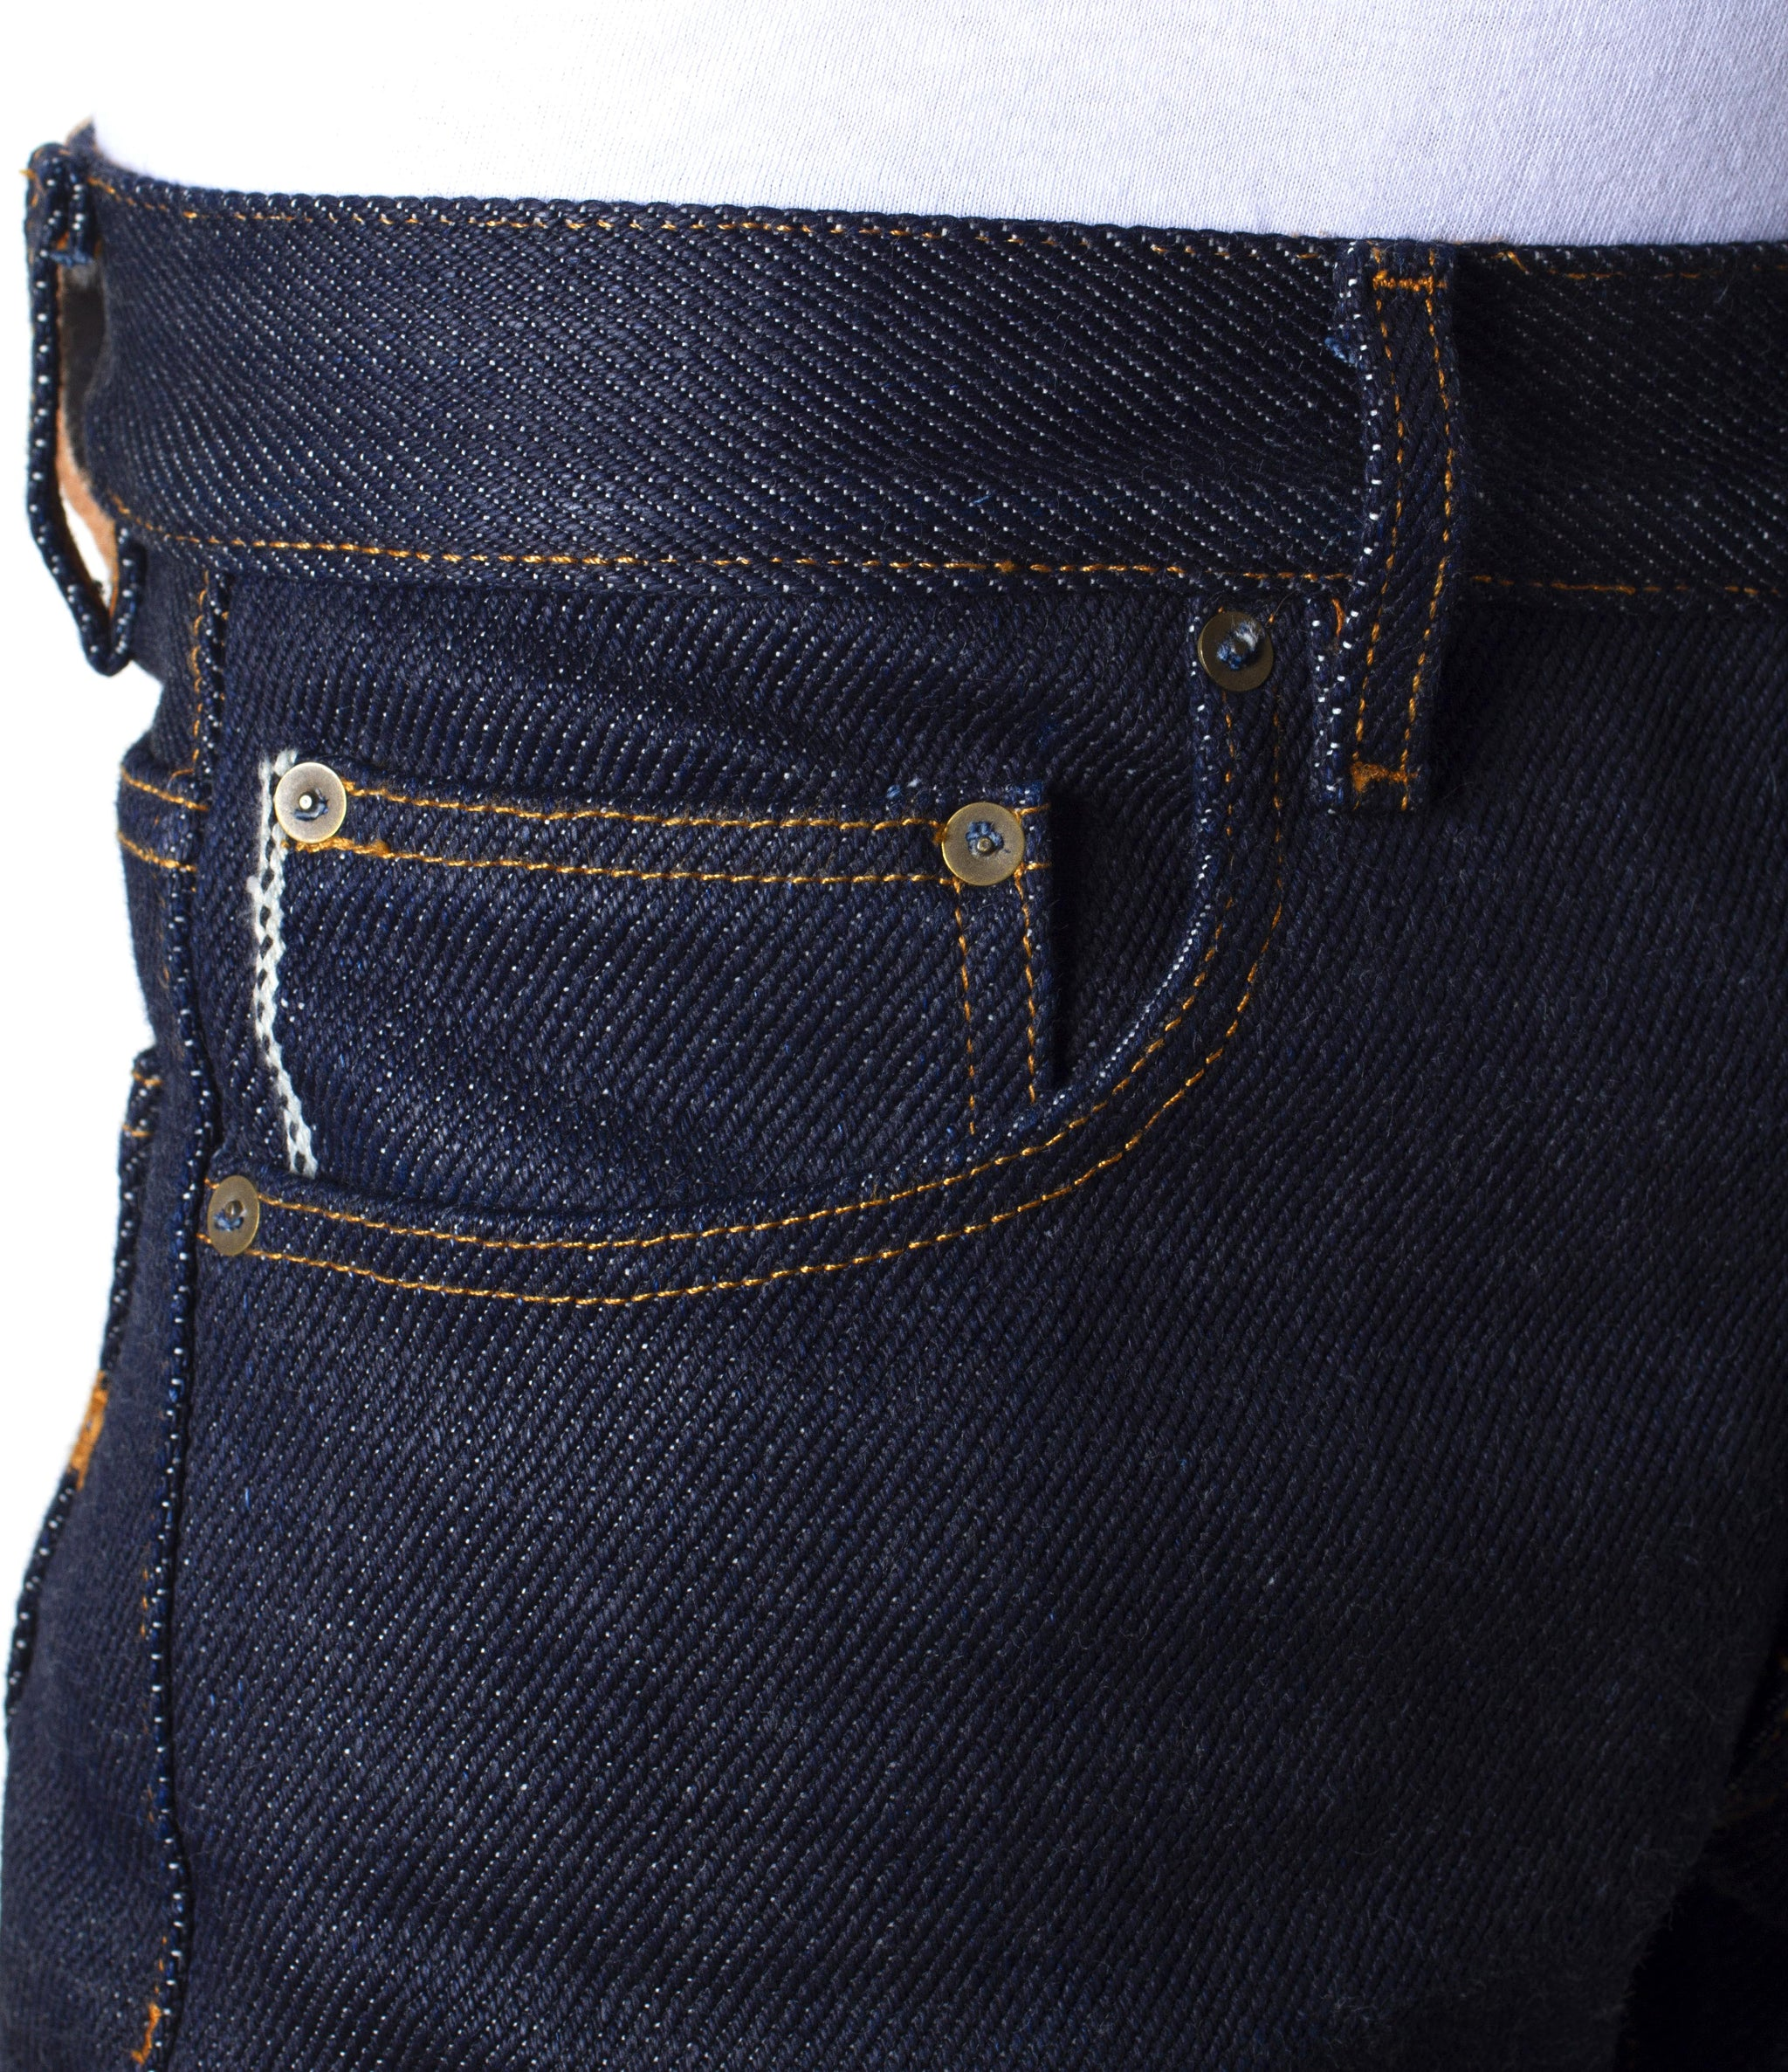 The Slim Straight 21.5oz Heavyweight Selvage